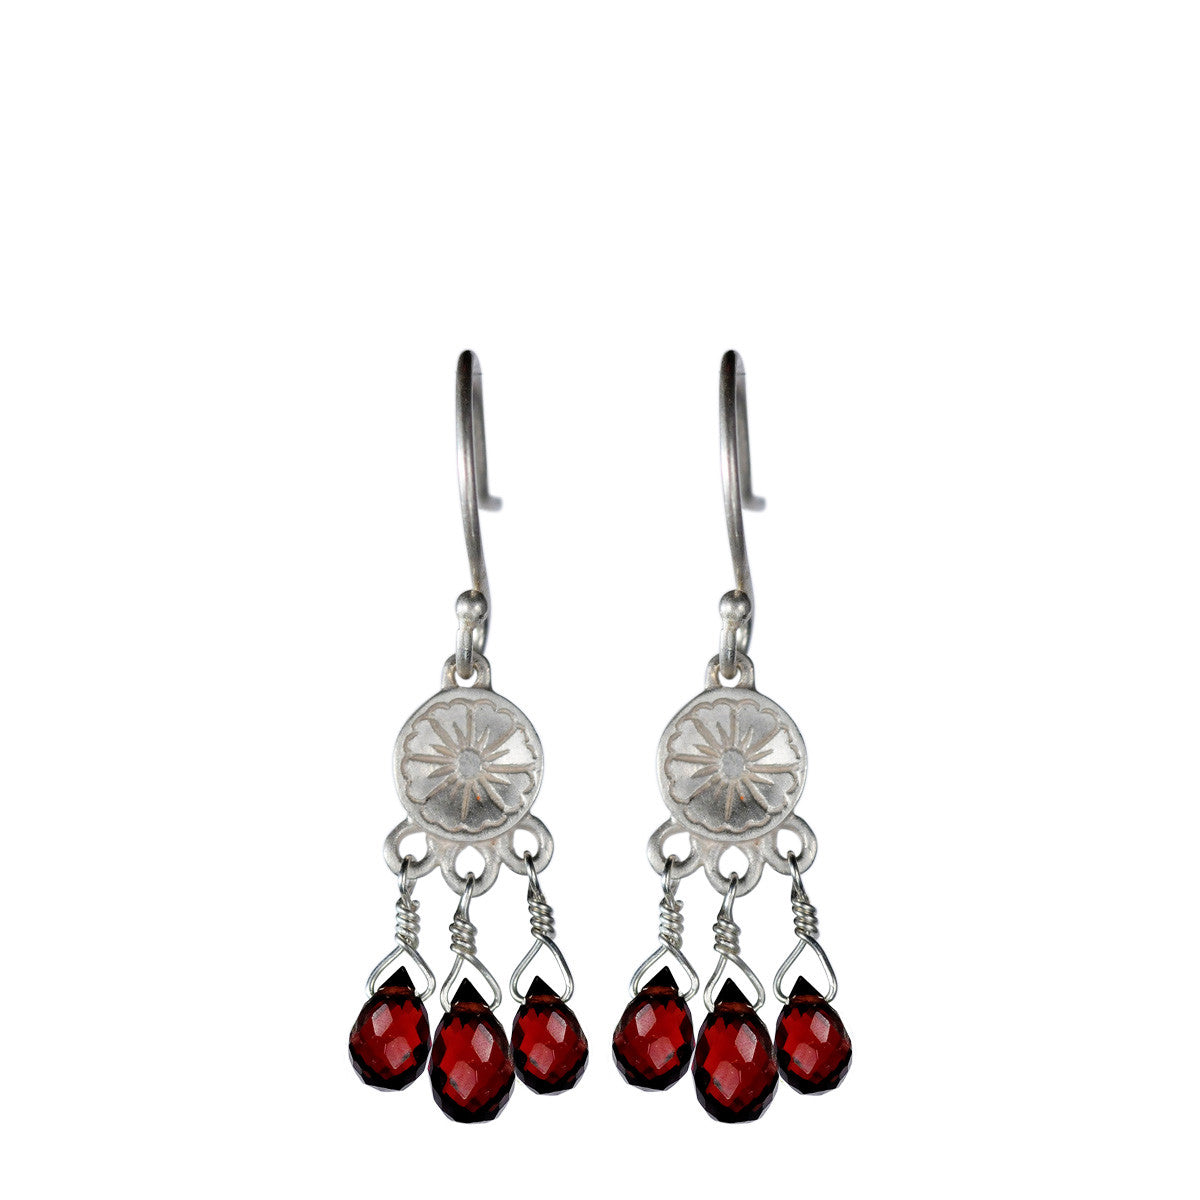 Sterling Silver Small Engraved Flower Earrings with Garnet Beads